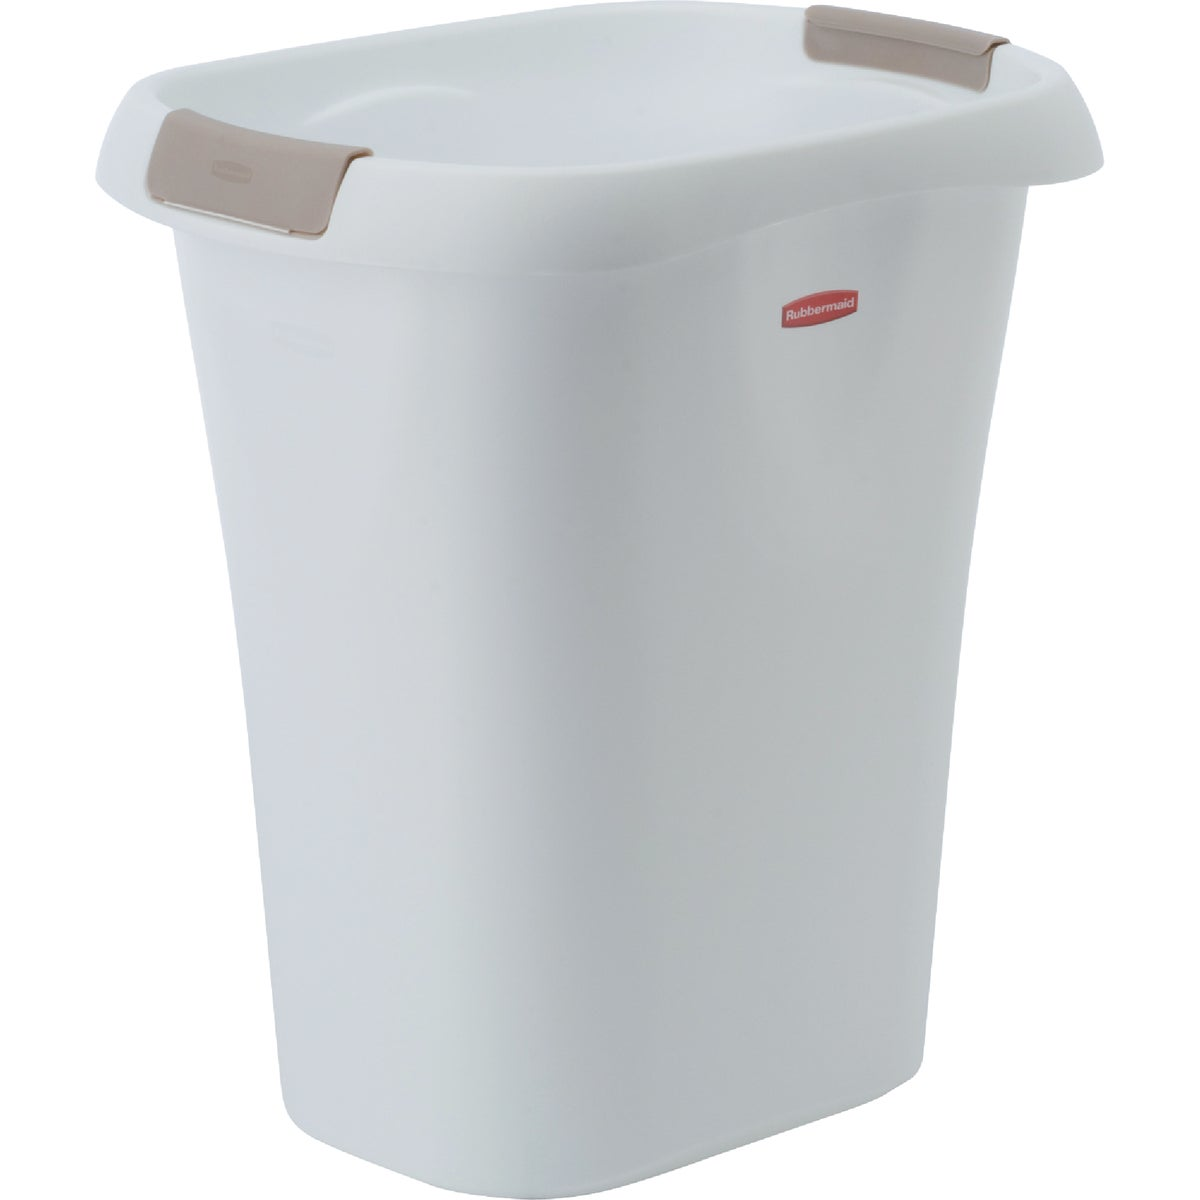 21QT WHITE WASTEBASKET - FG5L6100WHT by Rubbermaid Home